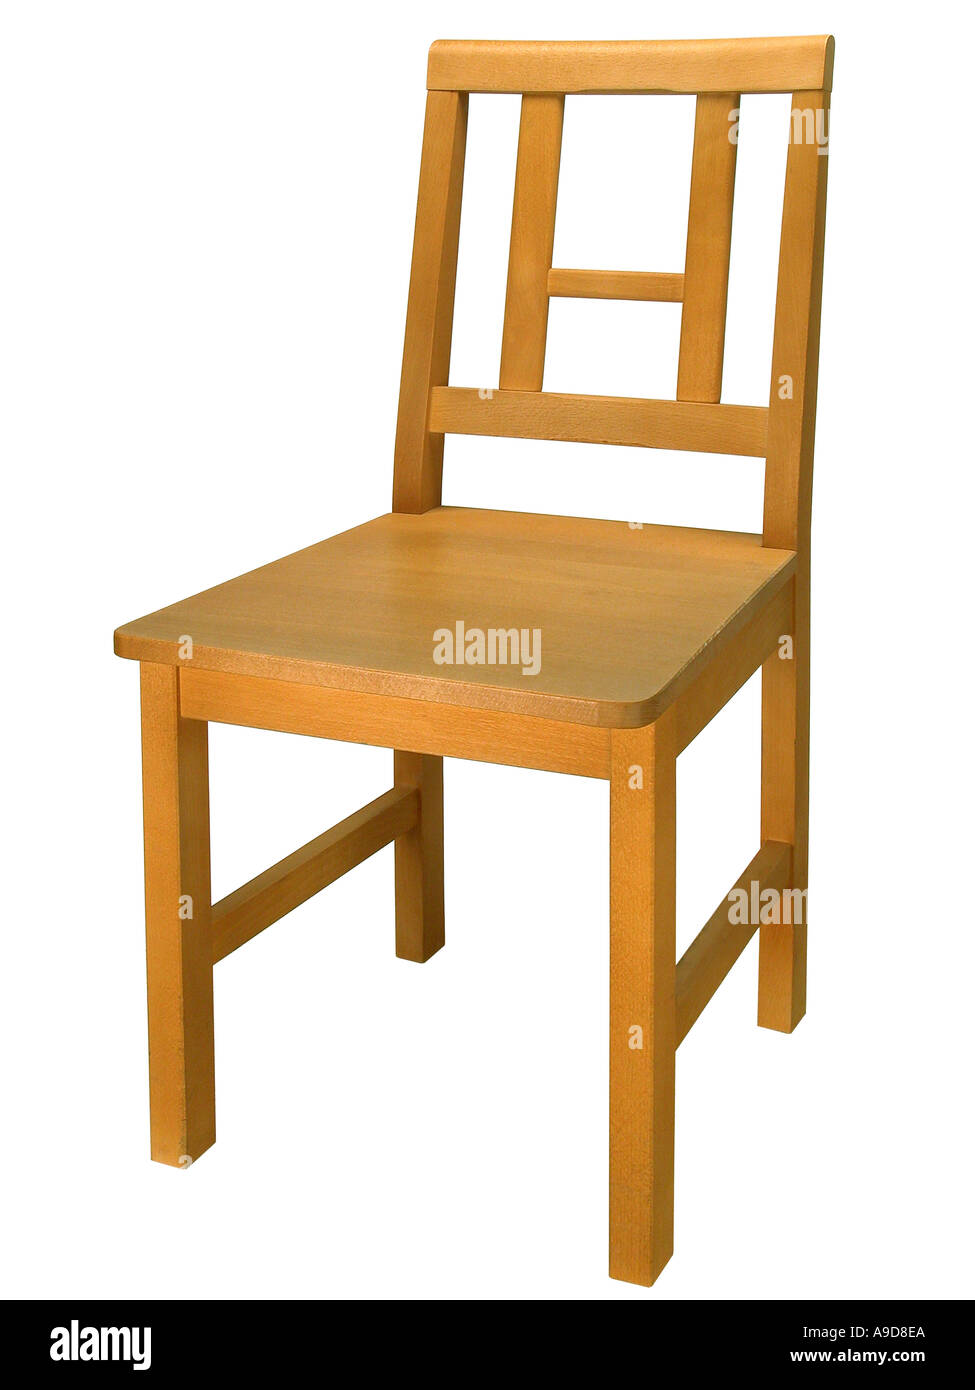 Wooden Chair Chair Wood Wooden Furniture Sit Seat Simple Plain